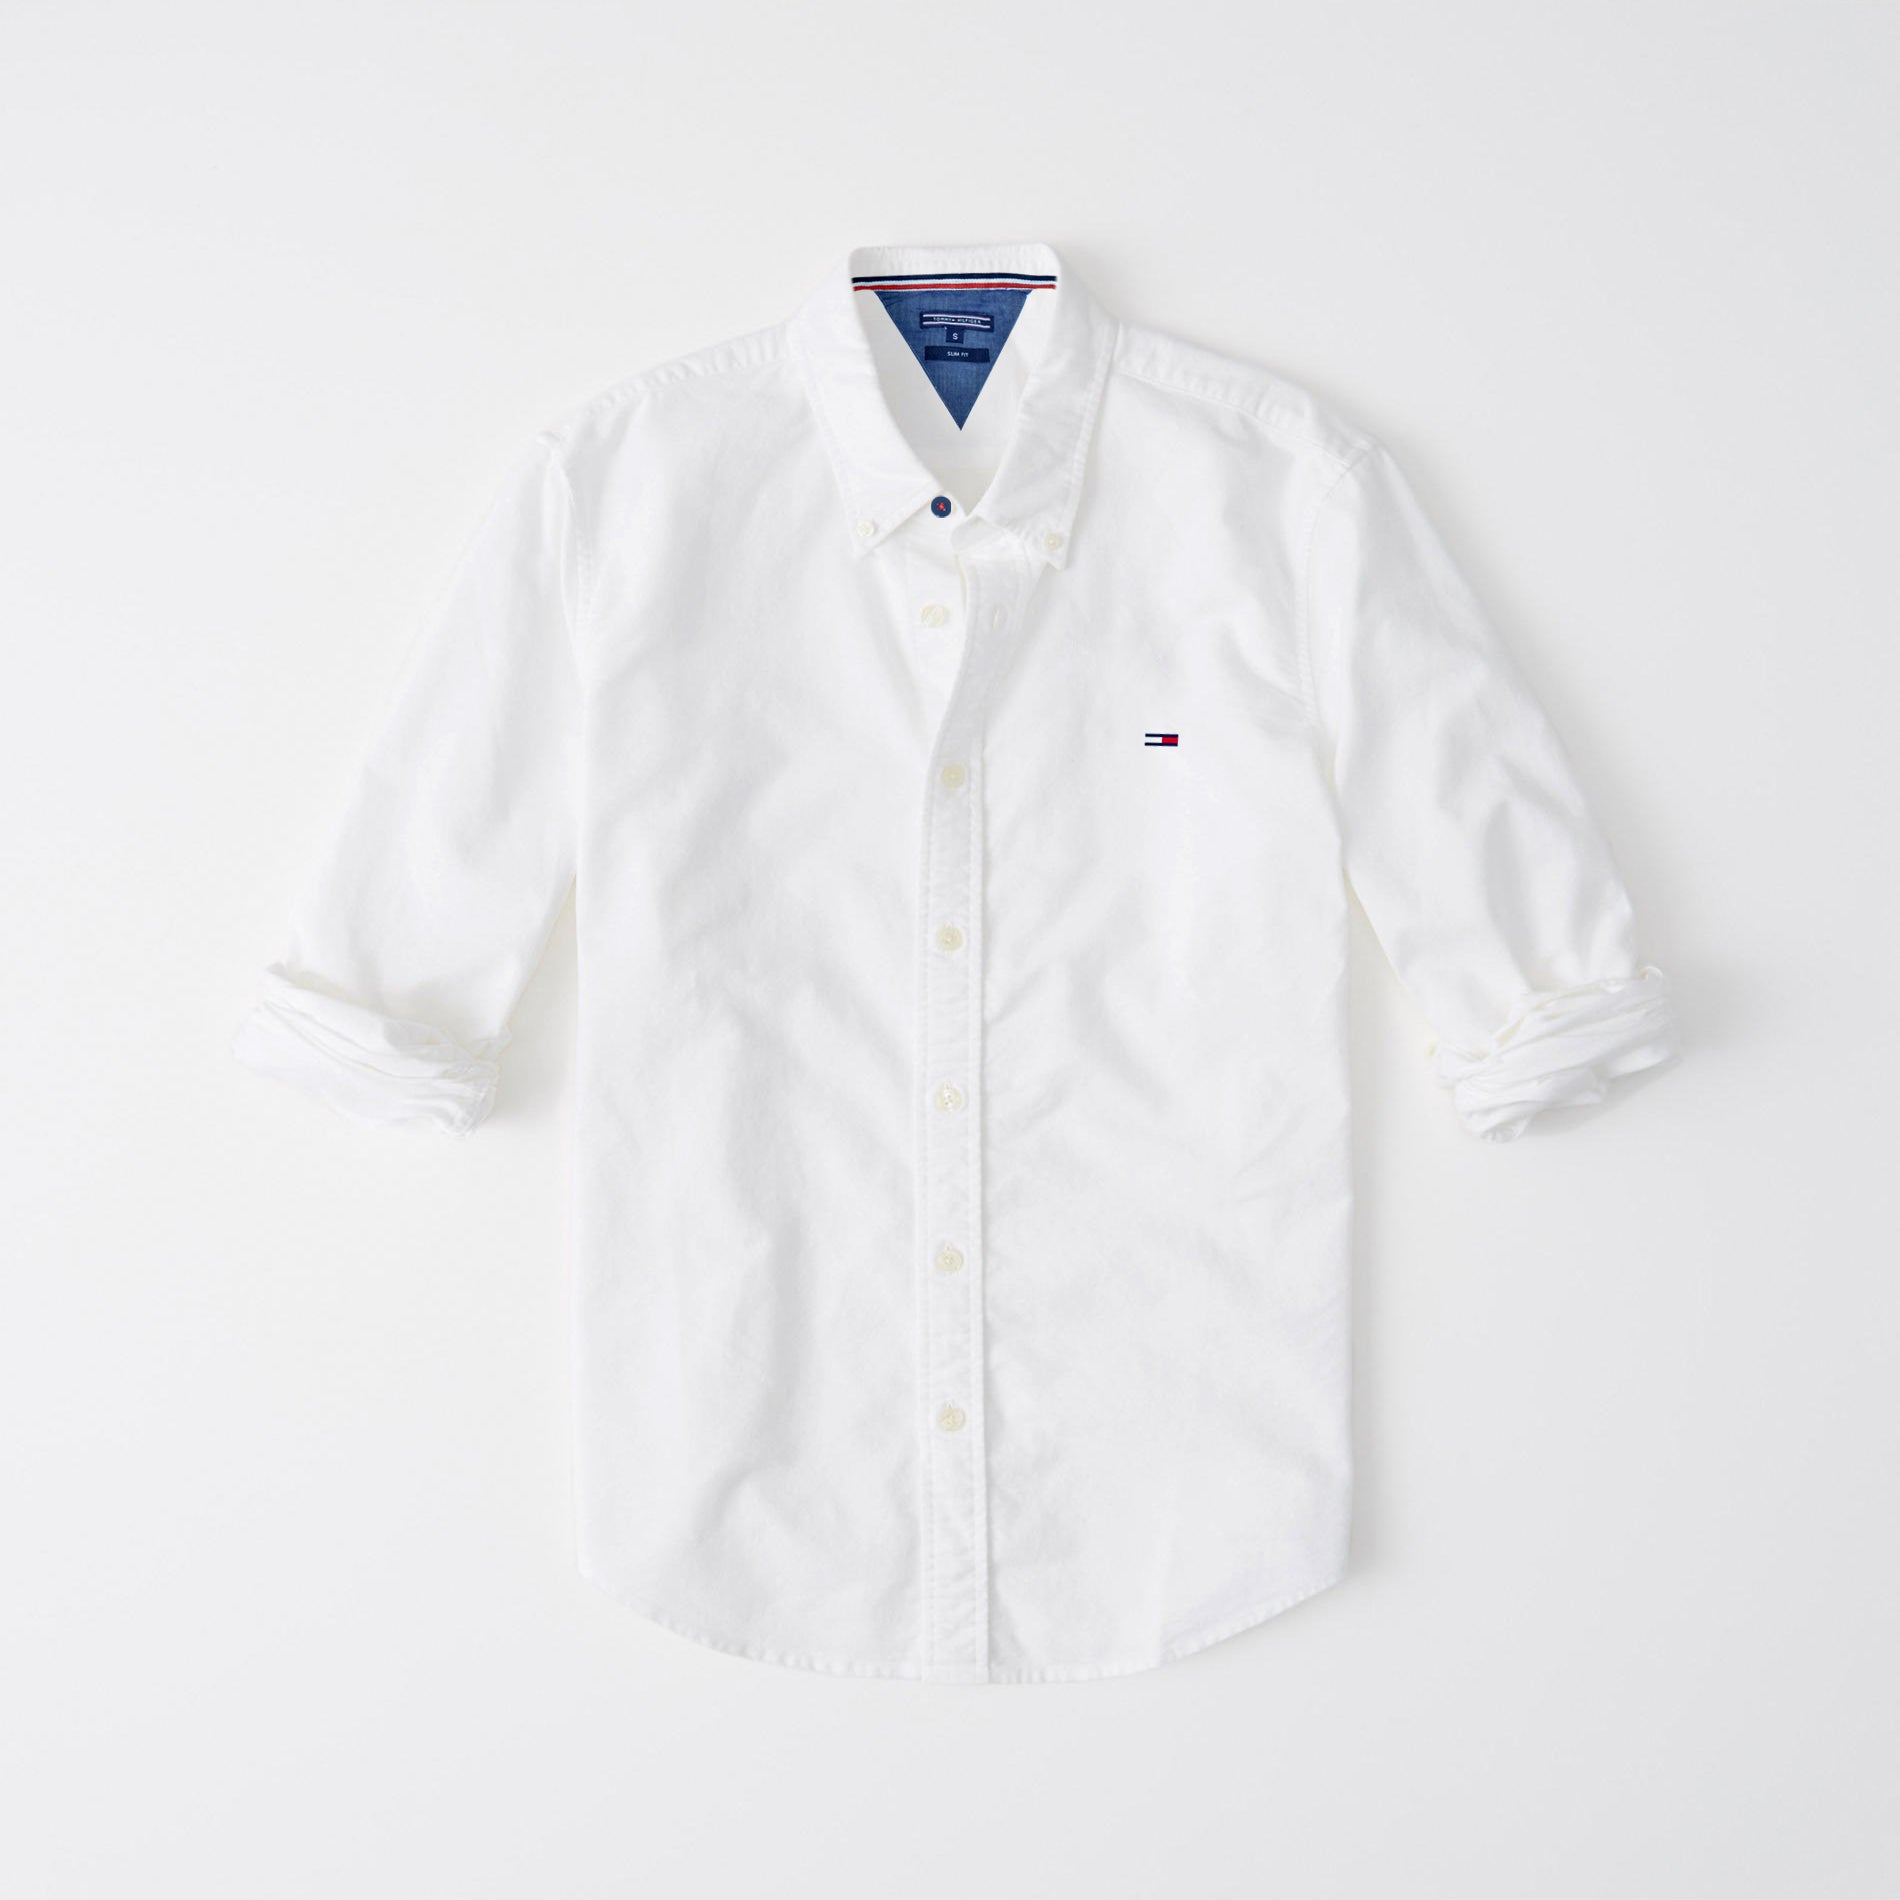 019327c97d3cb2 Tommy Hilfiger Slim Fit Long Sleeve Button Down Casual Shirts For Men-White -NA8136